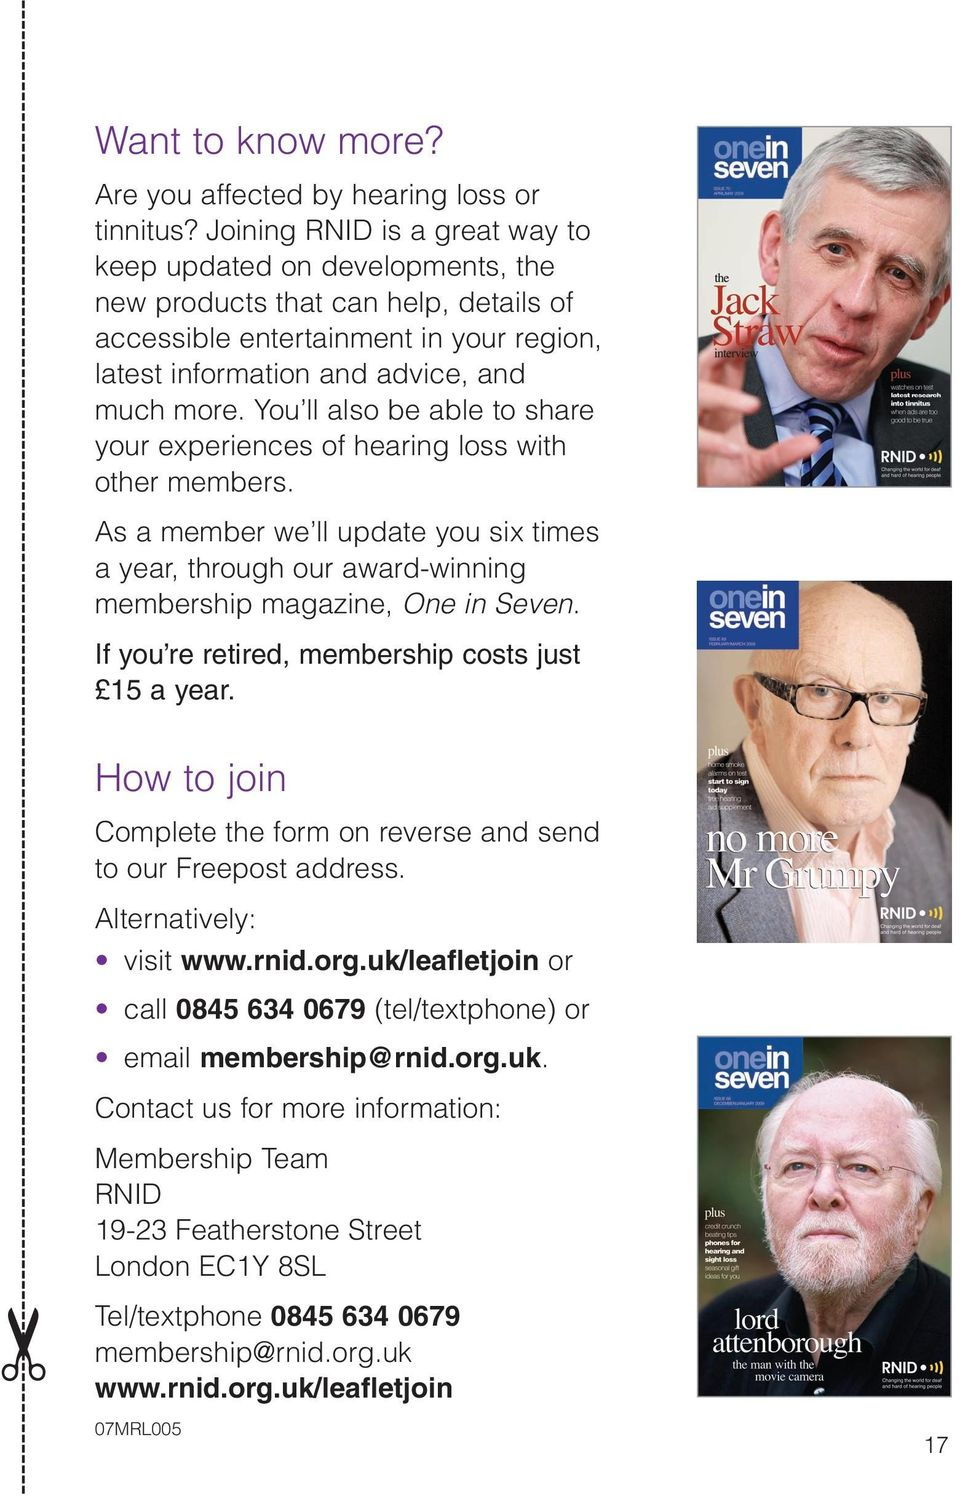 You ll also be able to share your experiences of hearing loss with other members. As a member we ll update you six times a year, through our award-winning membership magazine, One in Seven.